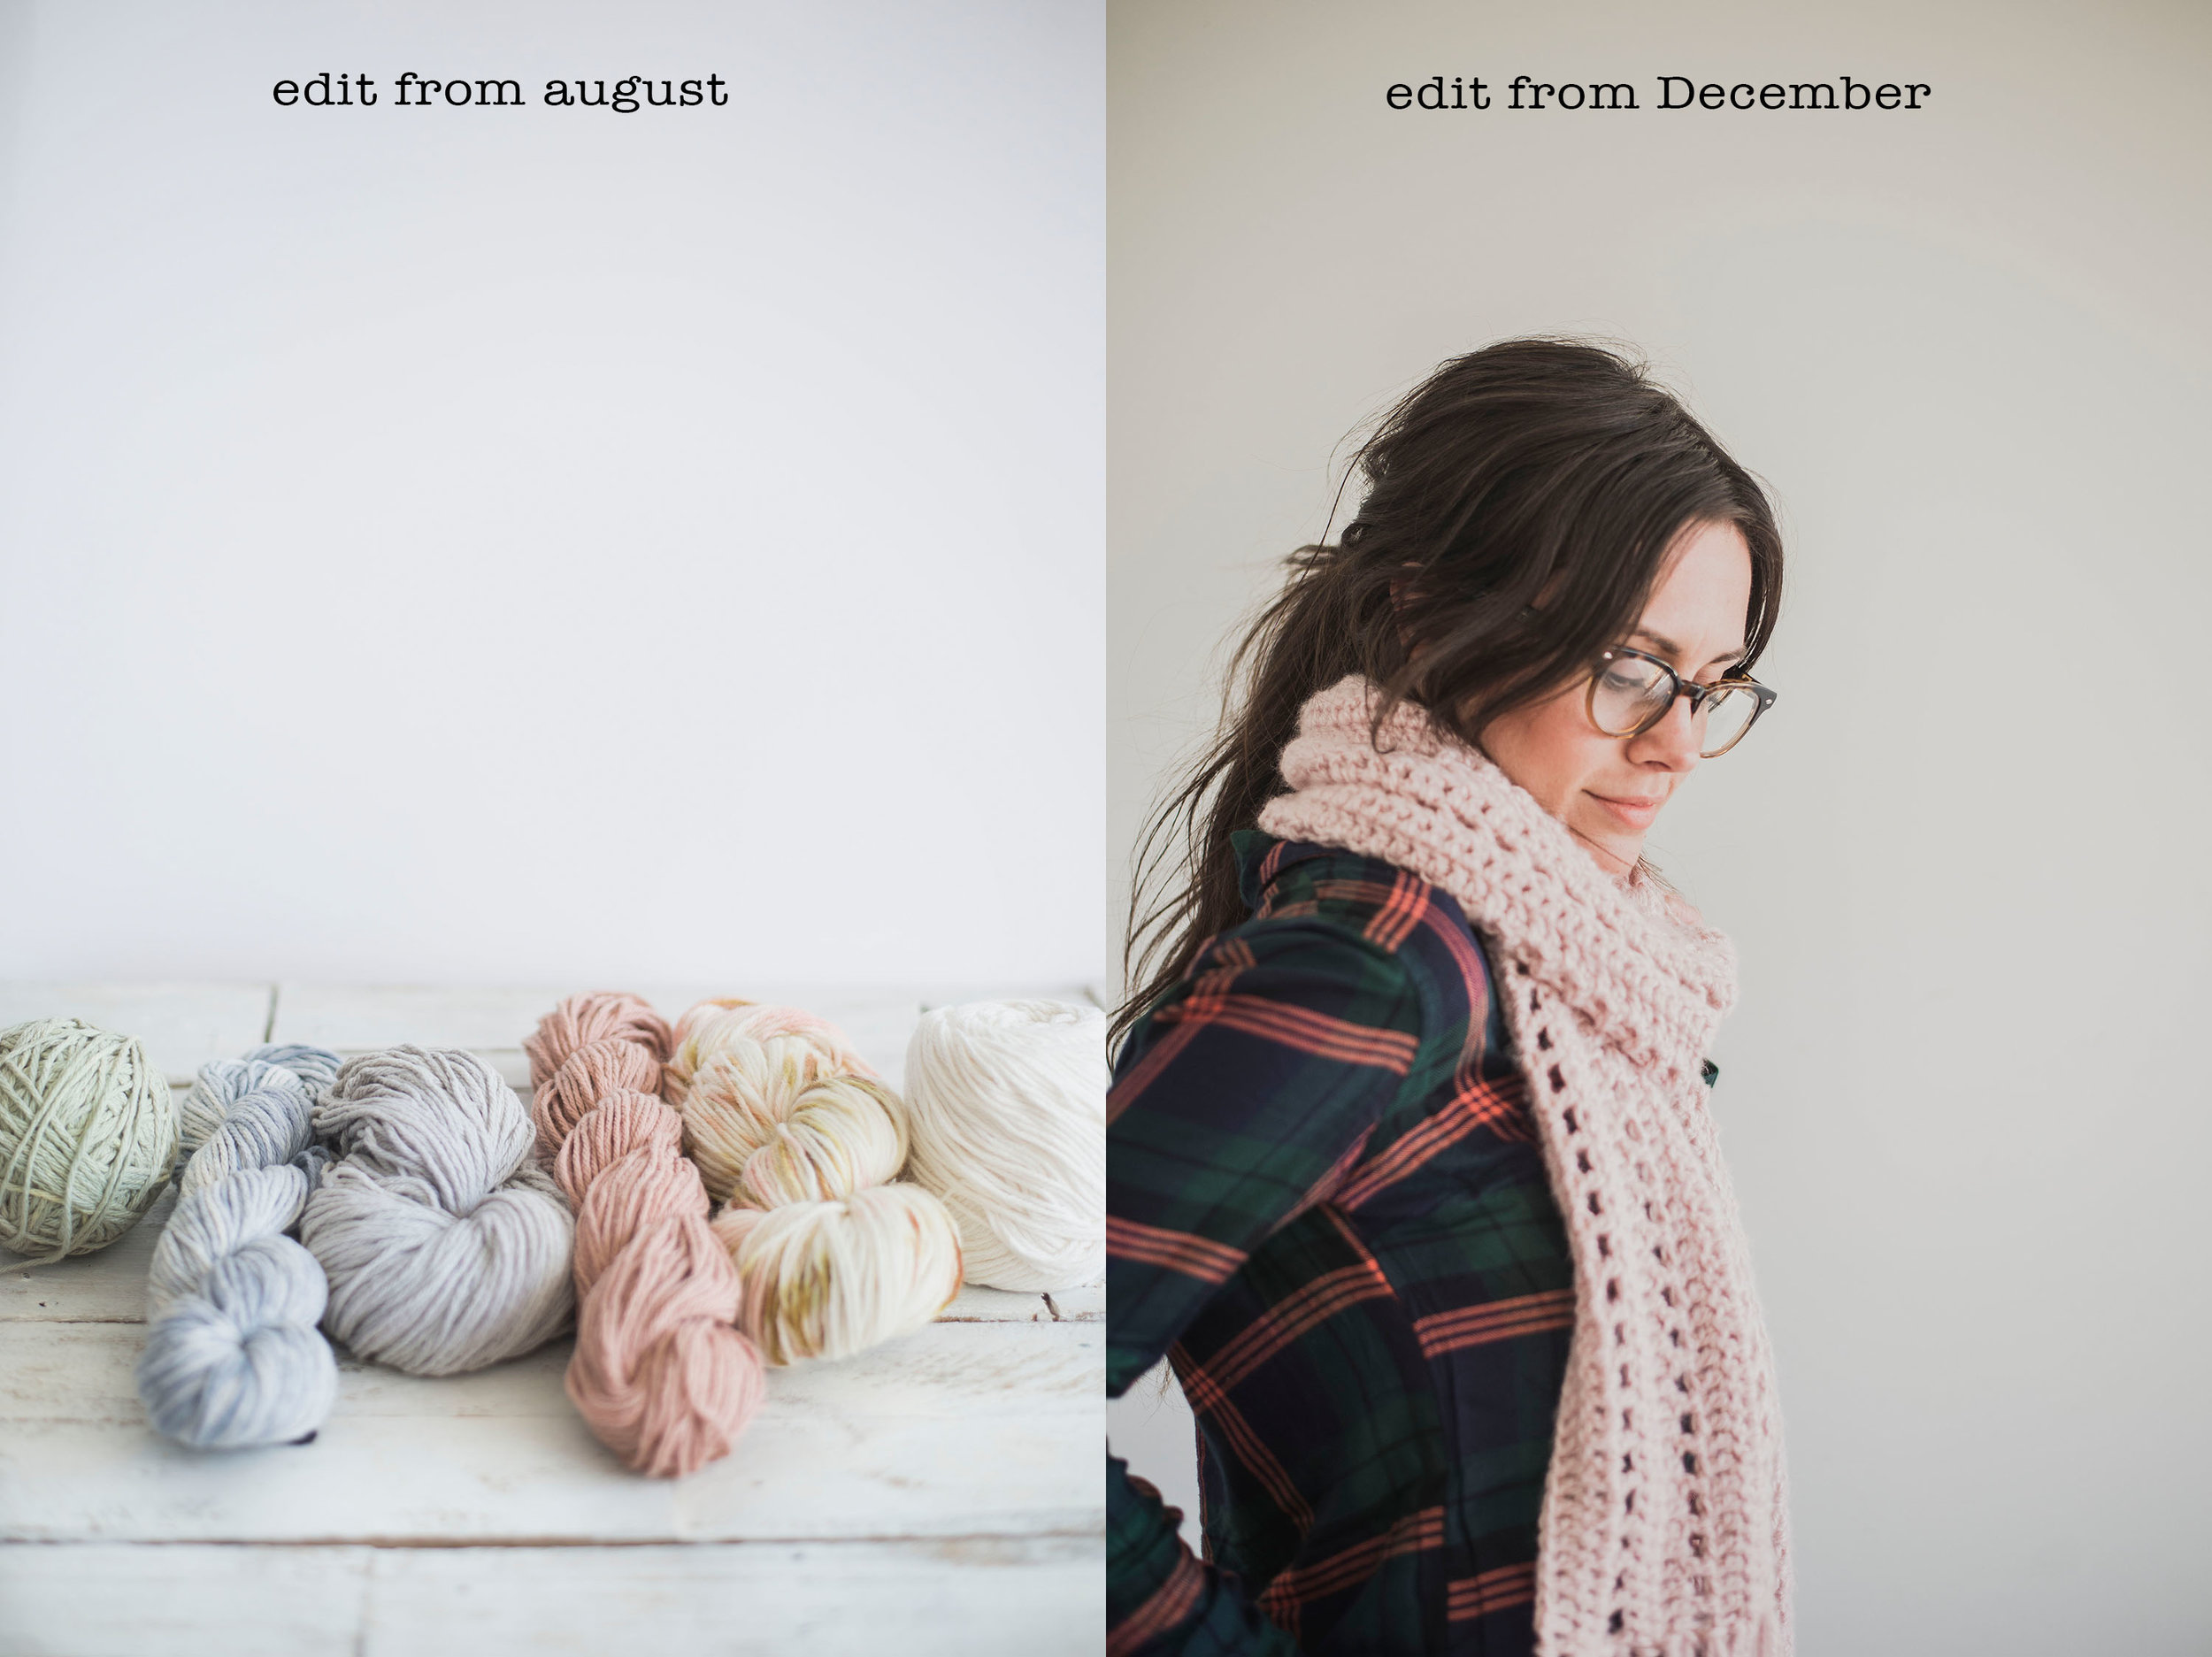 """An example of how my editing has changed these past few months. You can see on the left photo in August that my edit is more bright and """"true white"""". And on the right, my edit has more of a """"cloudy"""" feel. The whites are more gray and it almost looks antique-y."""